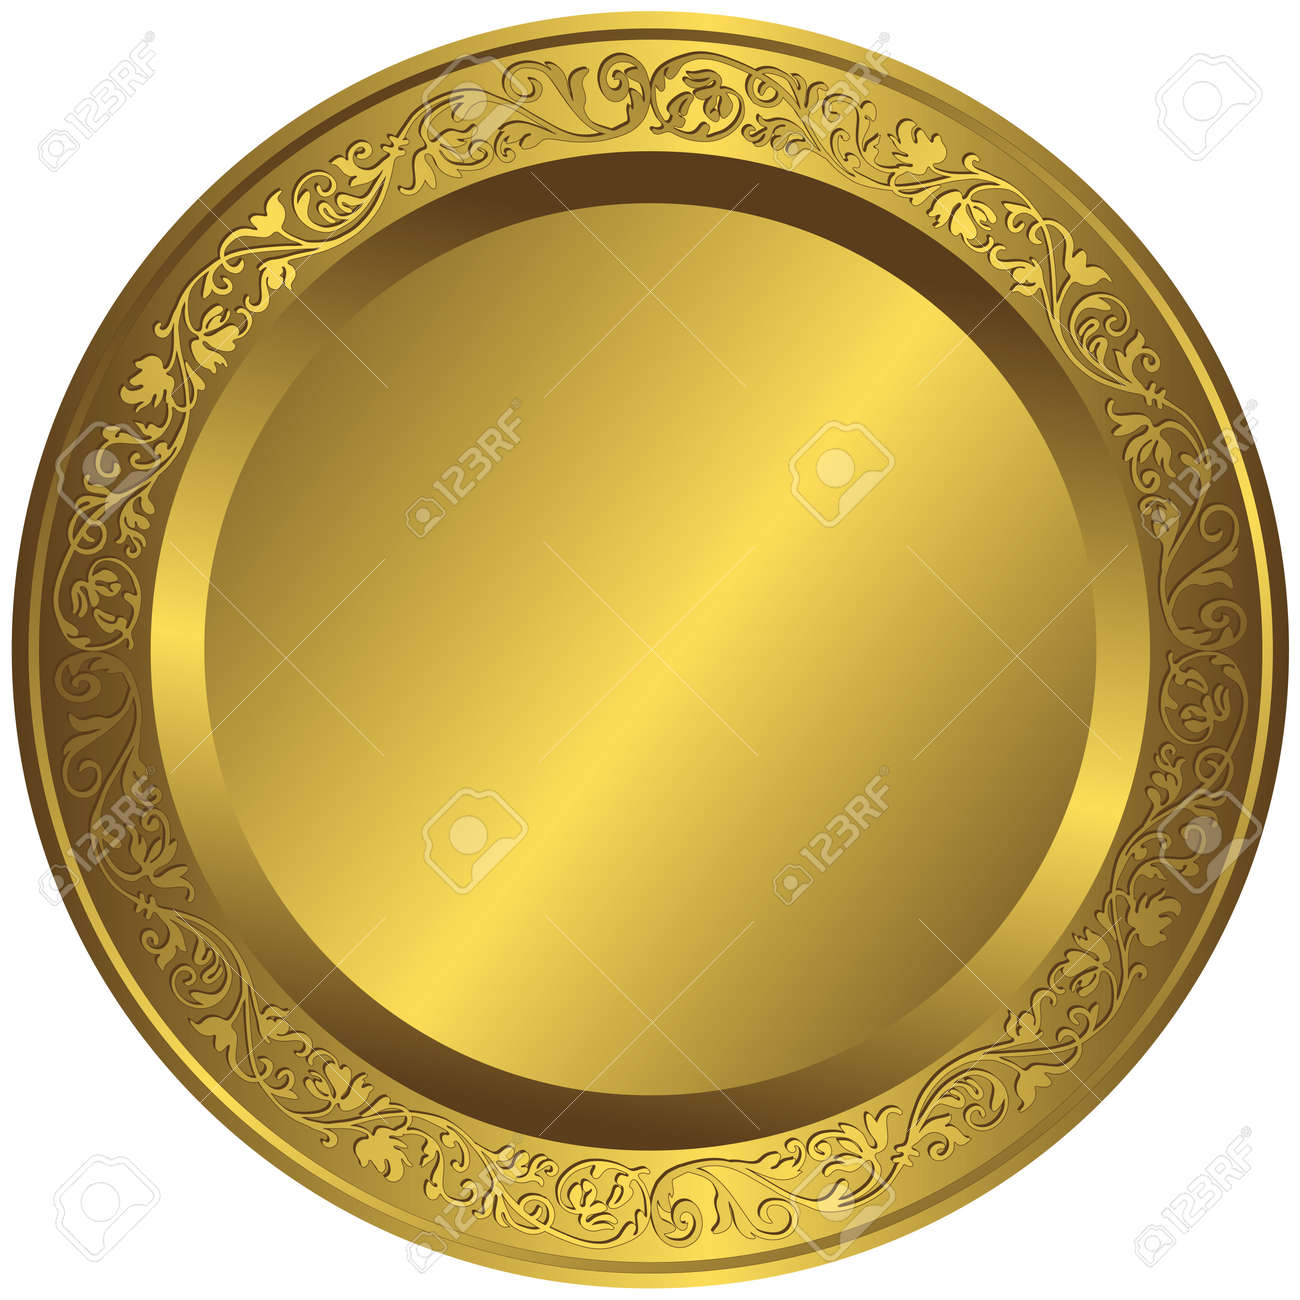 Old-fashioned golden plate with vintage ornament Stock Vector - 4647539